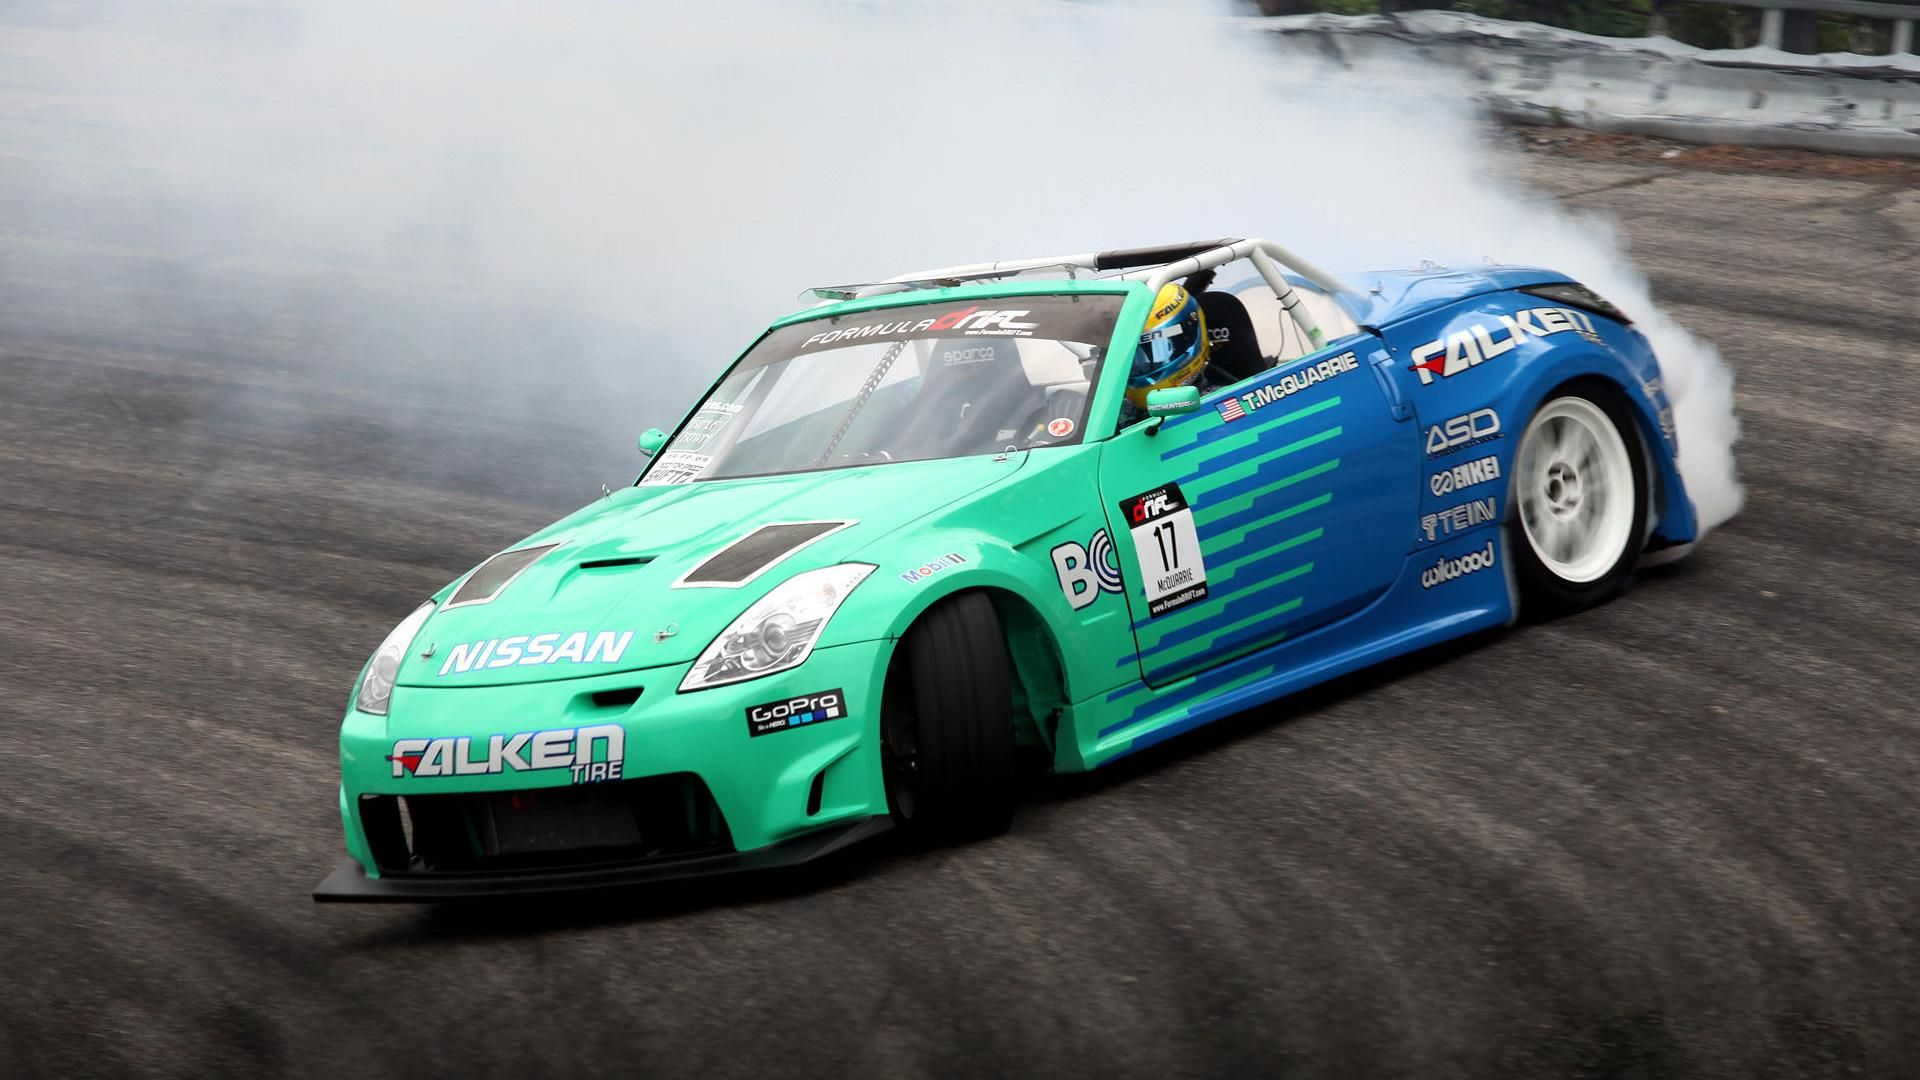 Hd Falcon Nissan Drift Car Wallpaper Z Pinterest